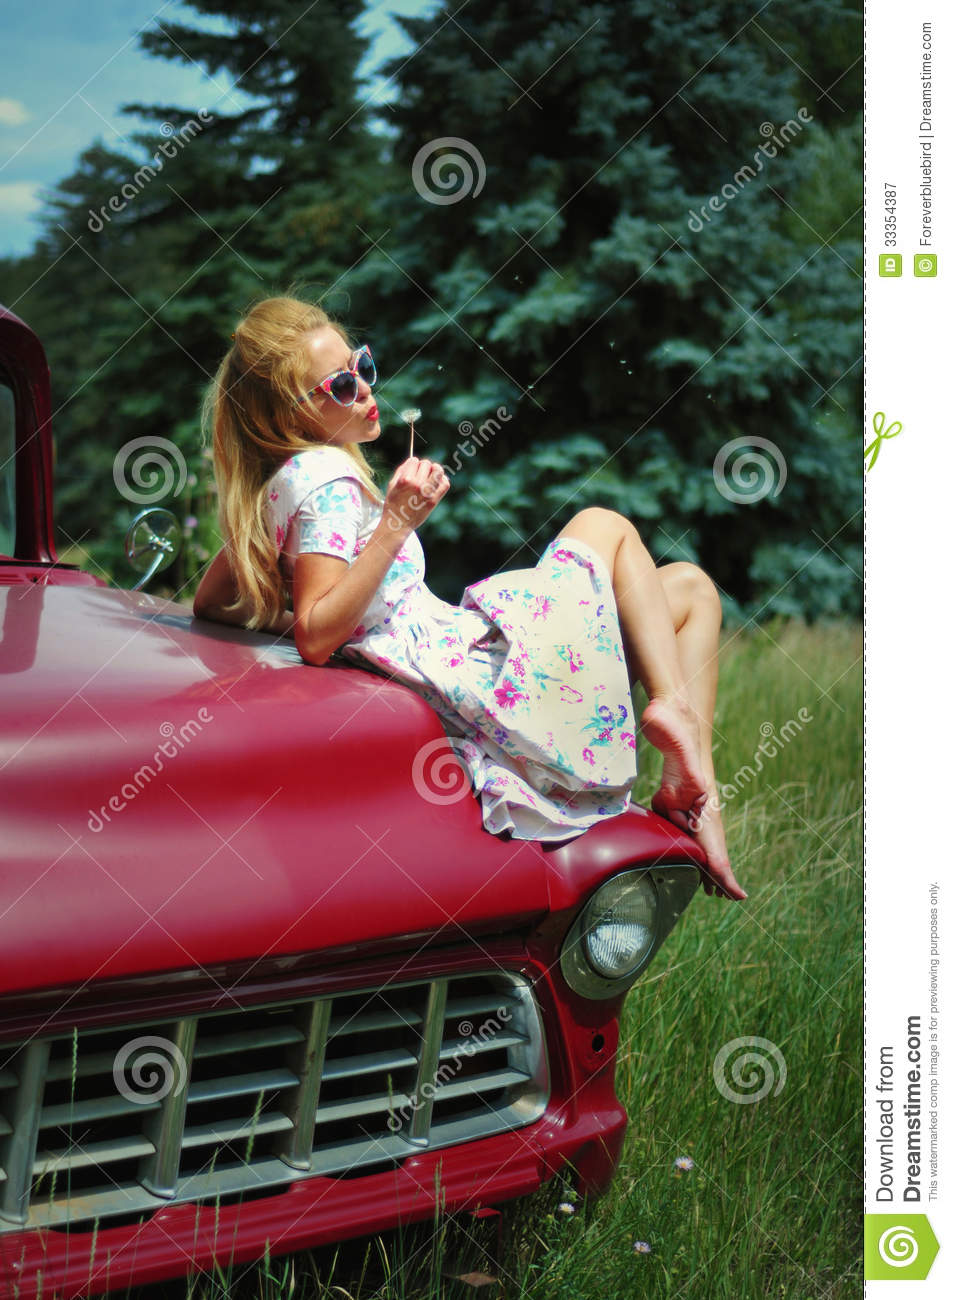 from Ethan nude girls sitting on cars